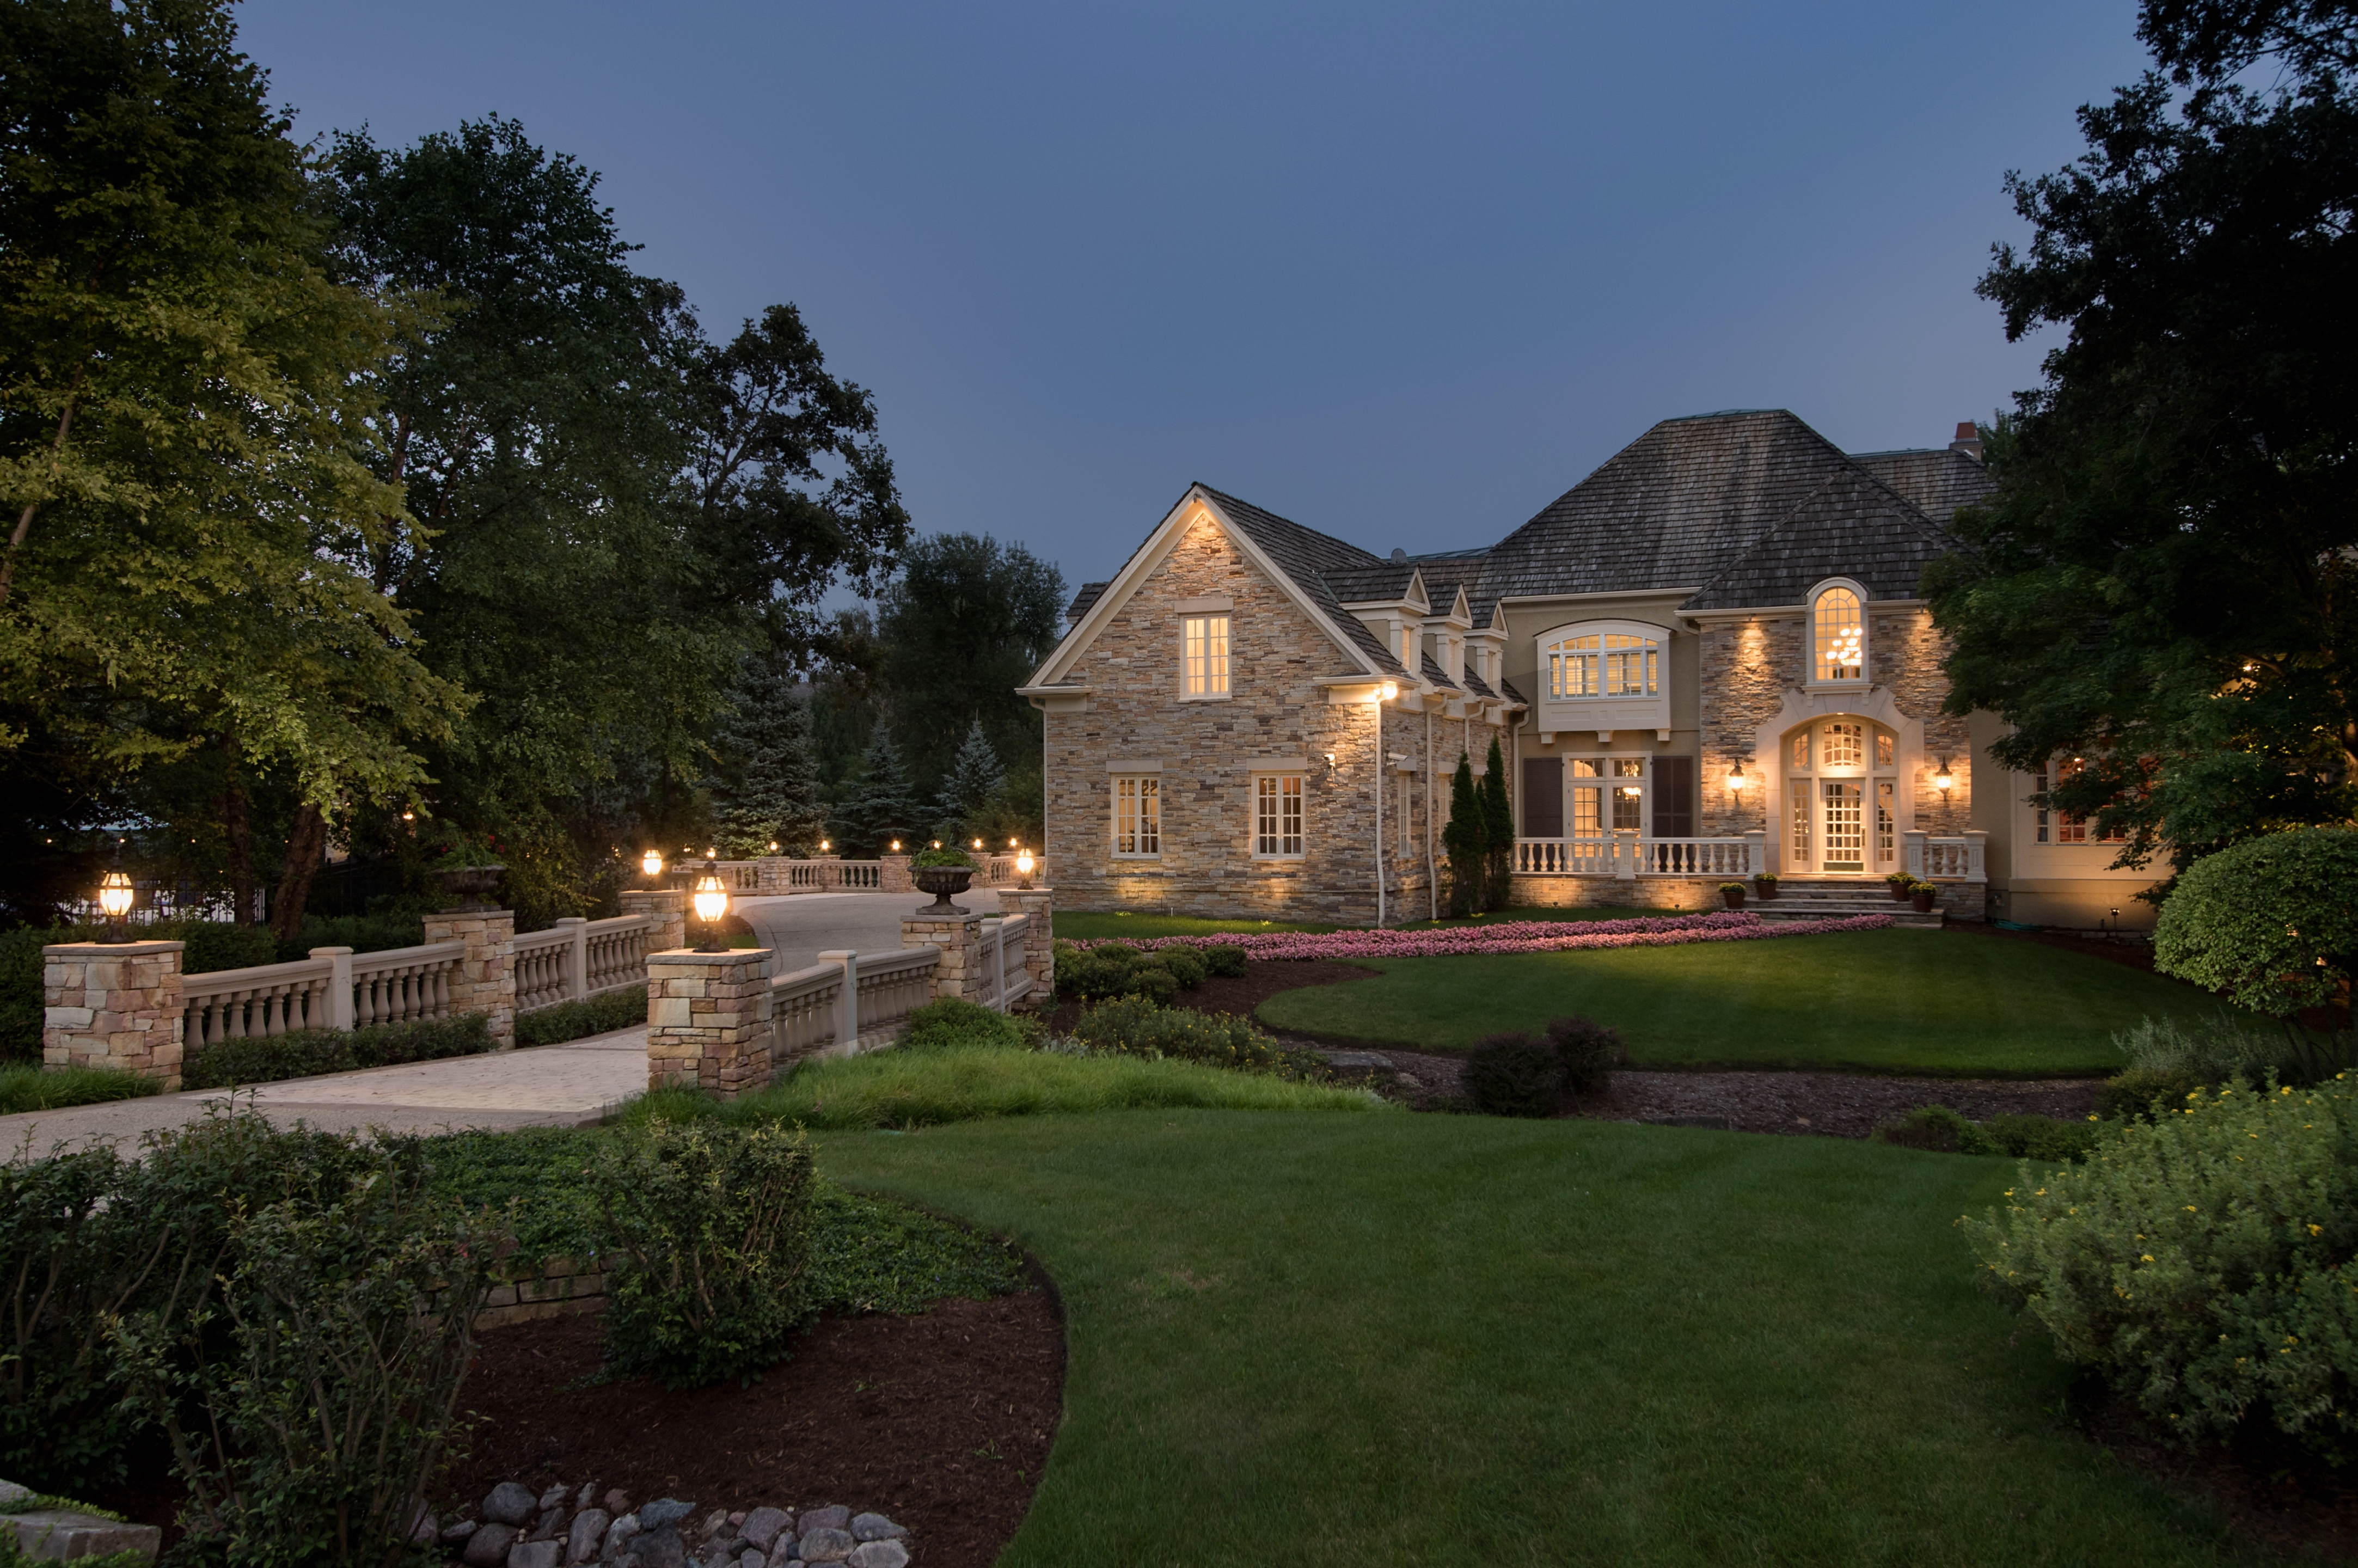 Single Family Home for Sale at Magnificent Wynstone Estate 77 Hillburn Lane North Barrington, Illinois, 60010 United States